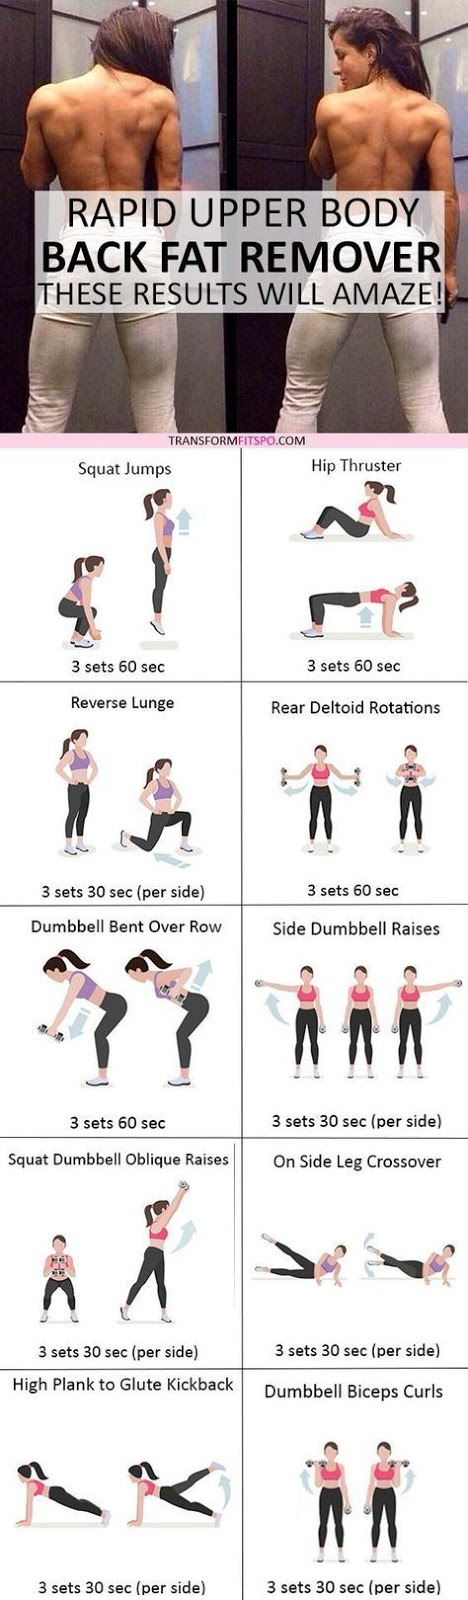 10+ IDEAS FITNESS BODY GOALS MOTIVATION LIFE FOR 2019